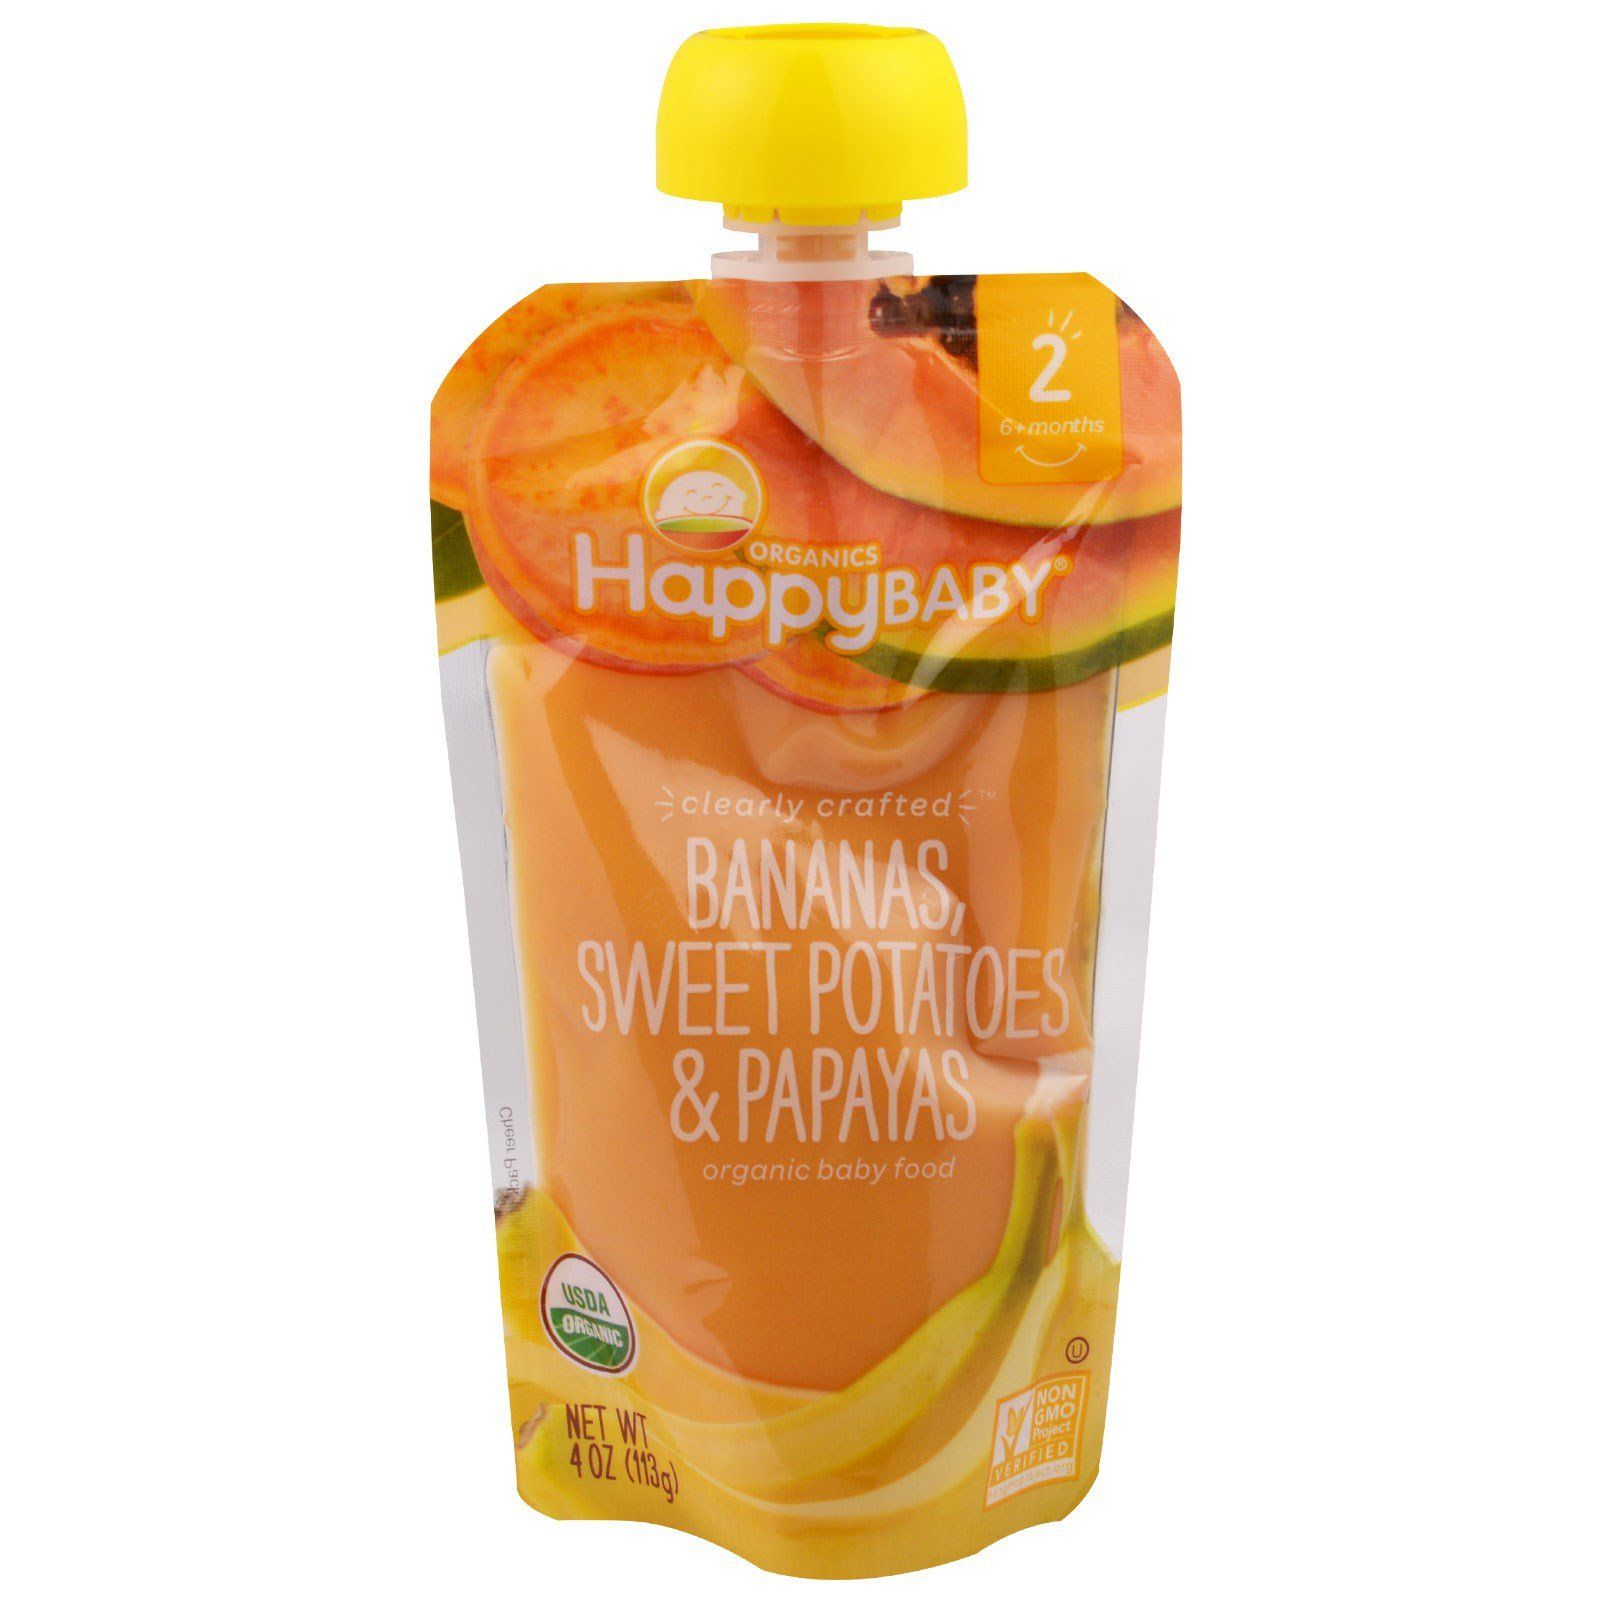 Happy Baby Clearly Crafted Stage 2 Organic Baby Food Bananas Sweet Potatoes & Papayas, 4 Ounce Pouch Resealable Baby Food Pouches, Fruit & Veggie Puree, Non-GMO Gluten Free Kosher by Happy Family